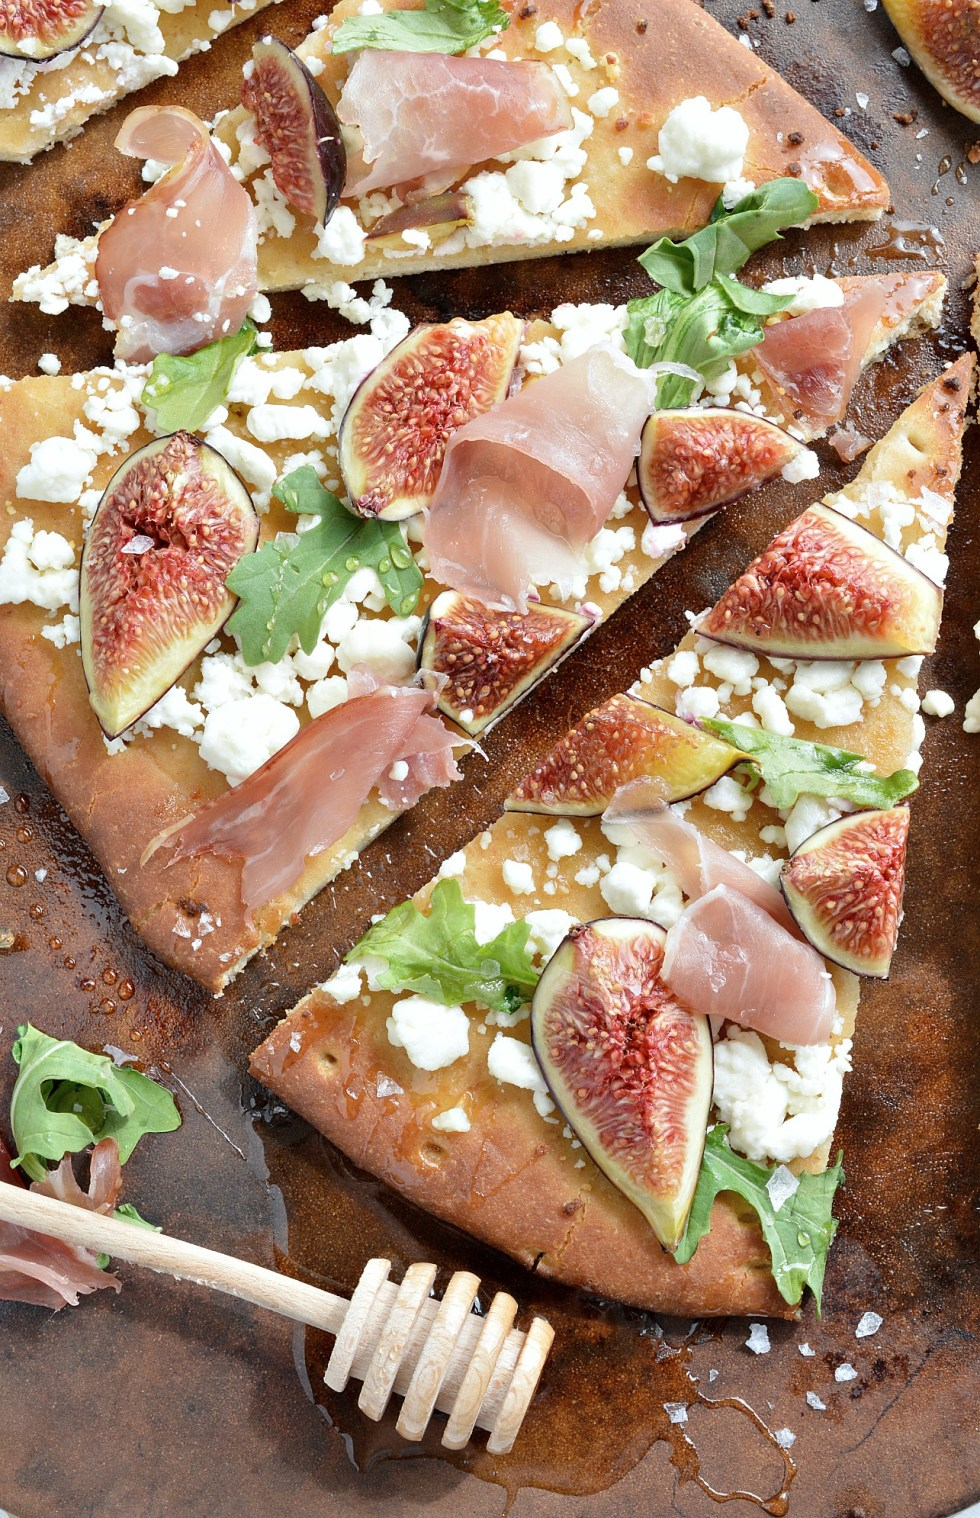 If you need a quick and easy dinner idea I am here for you! This Fig and Prosciutto Flatbread Pizza Recipe is a great no-fuss meal. Fresh figs, crumbled goat cheese, prosciutto, peppery greens, honey and flaked salt make this flatbread pizza ultra delicious . . . and perfect with a glass of wine! This meal comes together in about 15 minutes!